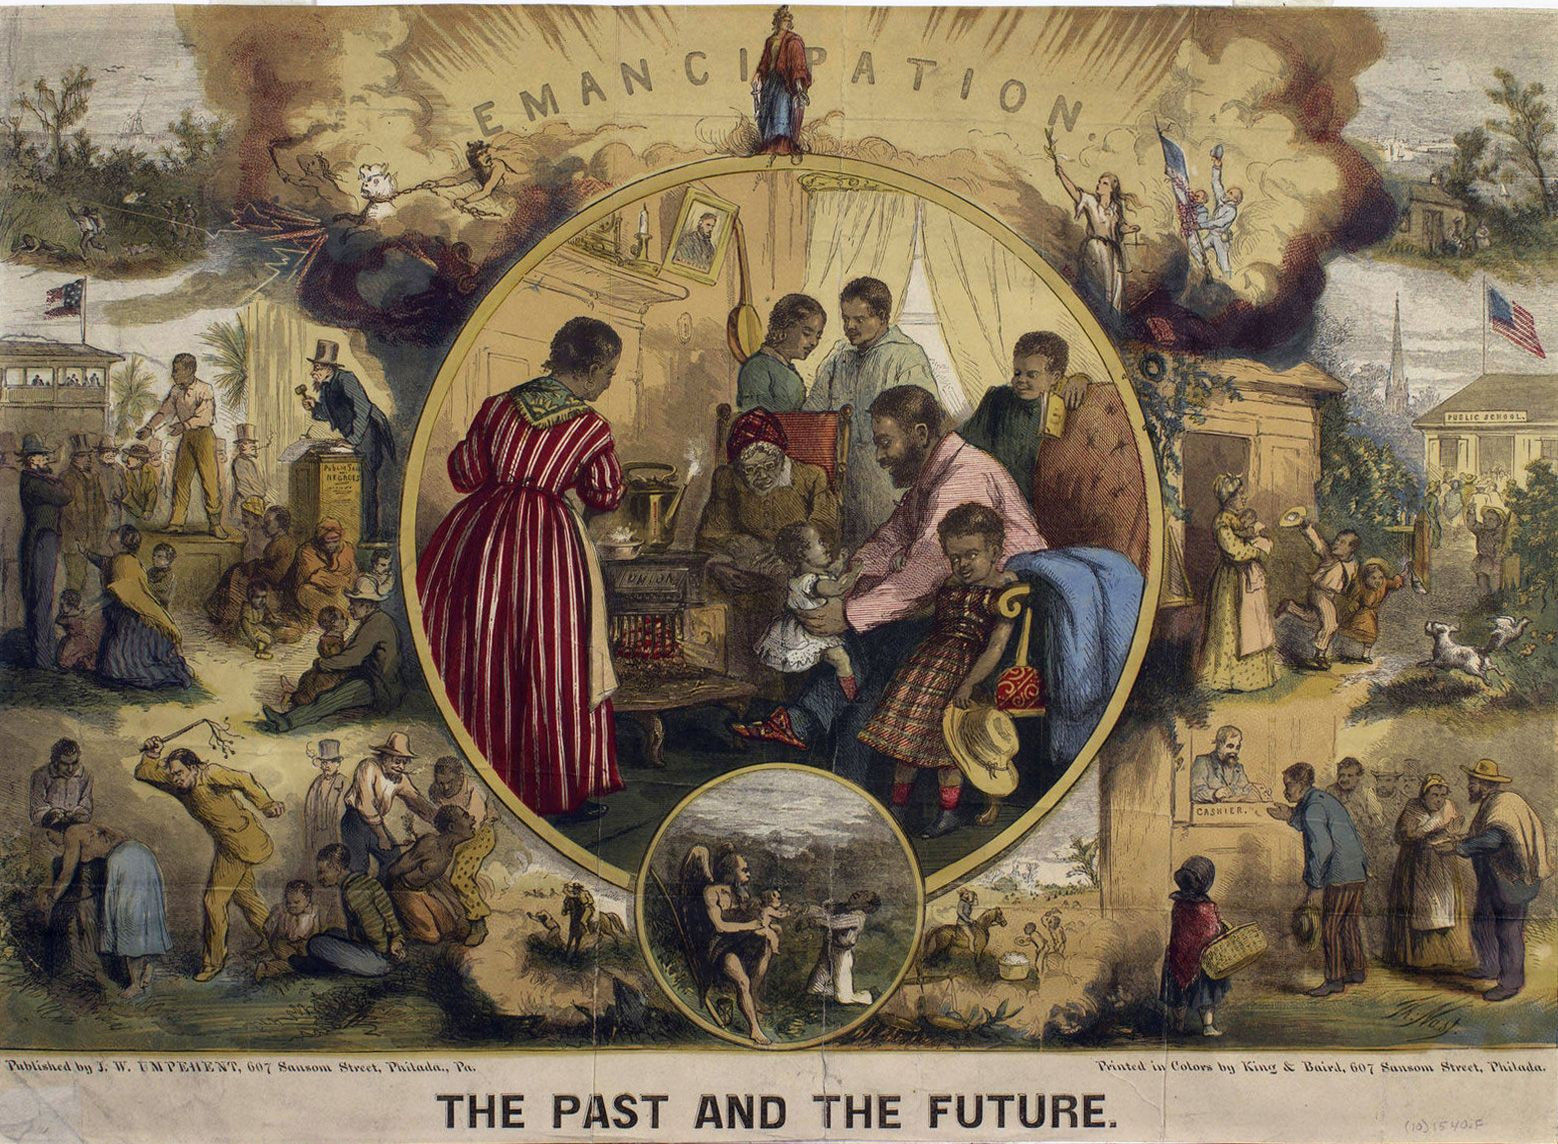 The Past and the Future- The Emancipation Proclamation